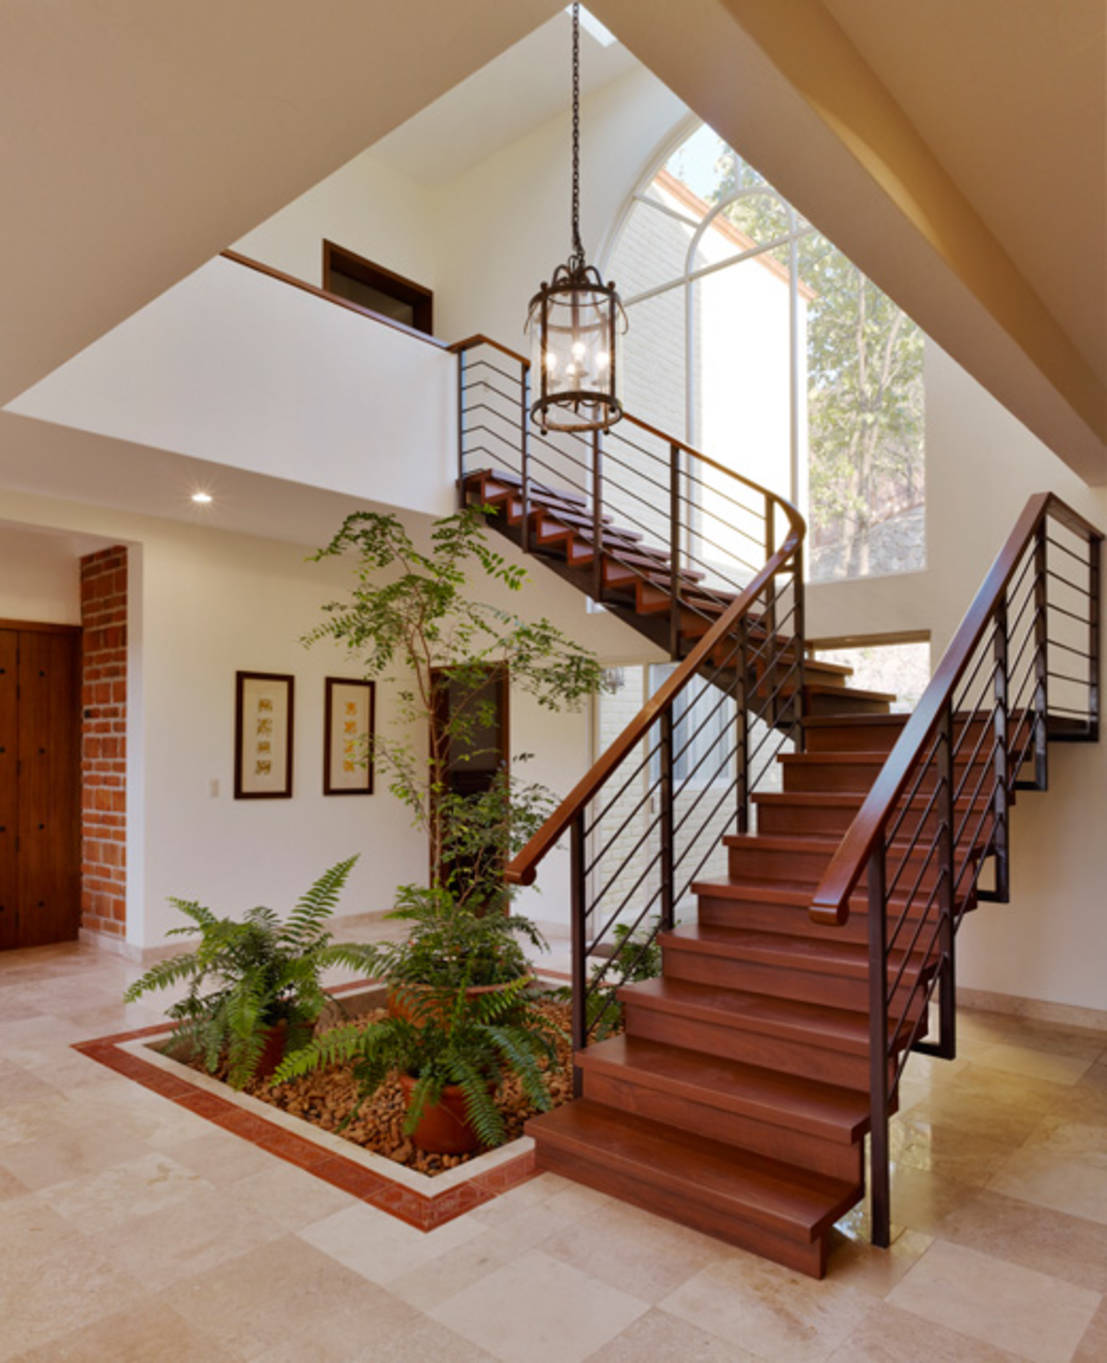 9 ideas para decorar tu escalera con un mini jard n - Escaleras para jardin ...